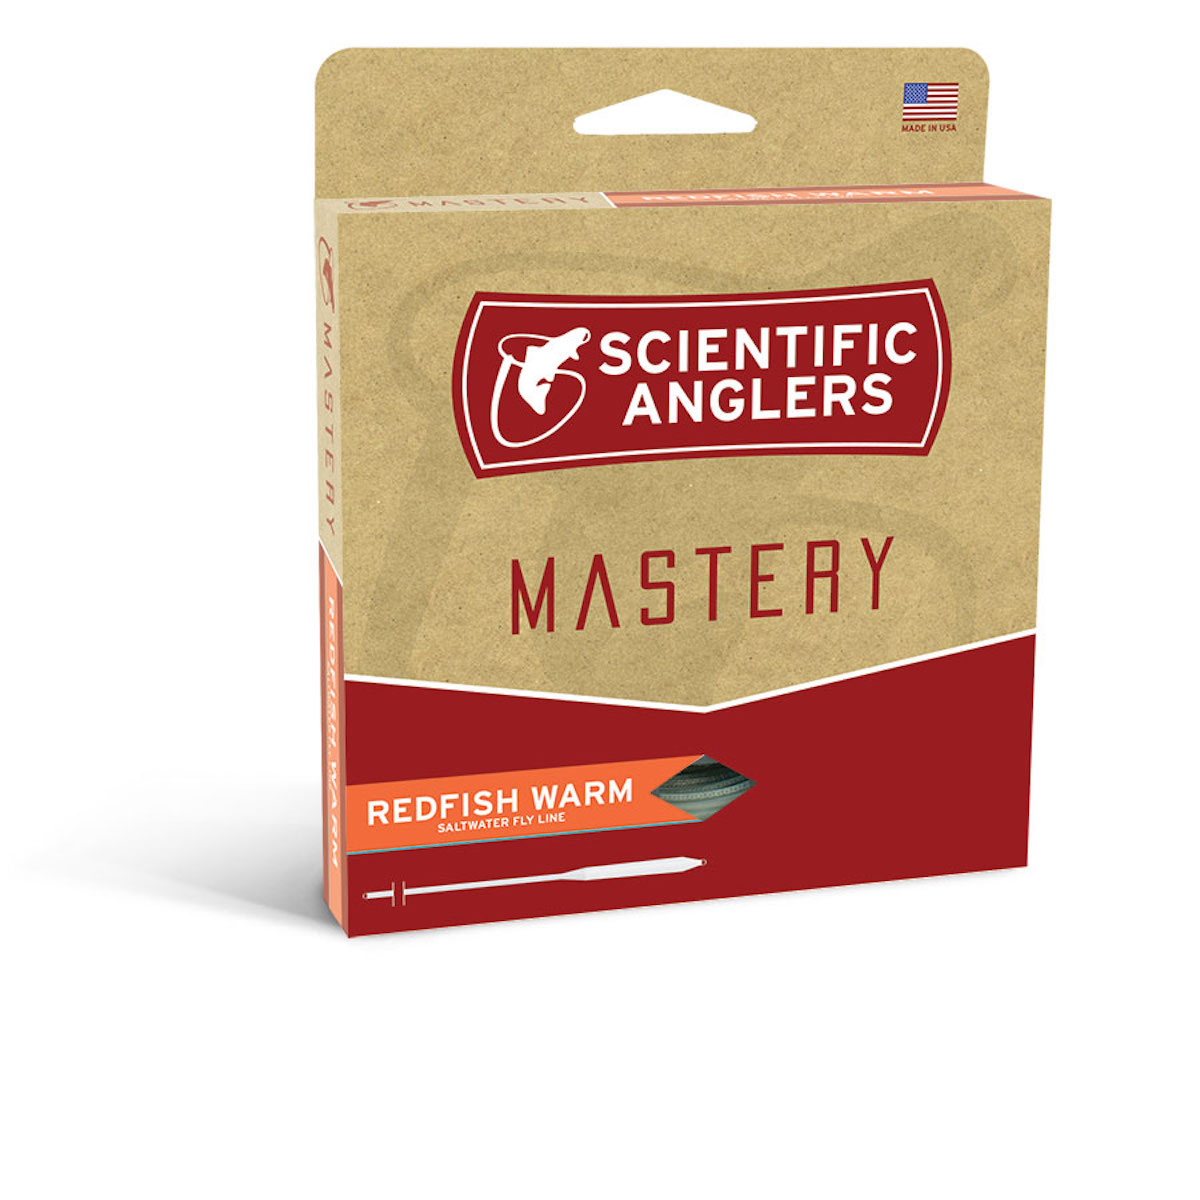 Scientific Anglers Mastery Summer Redfish Fly Line